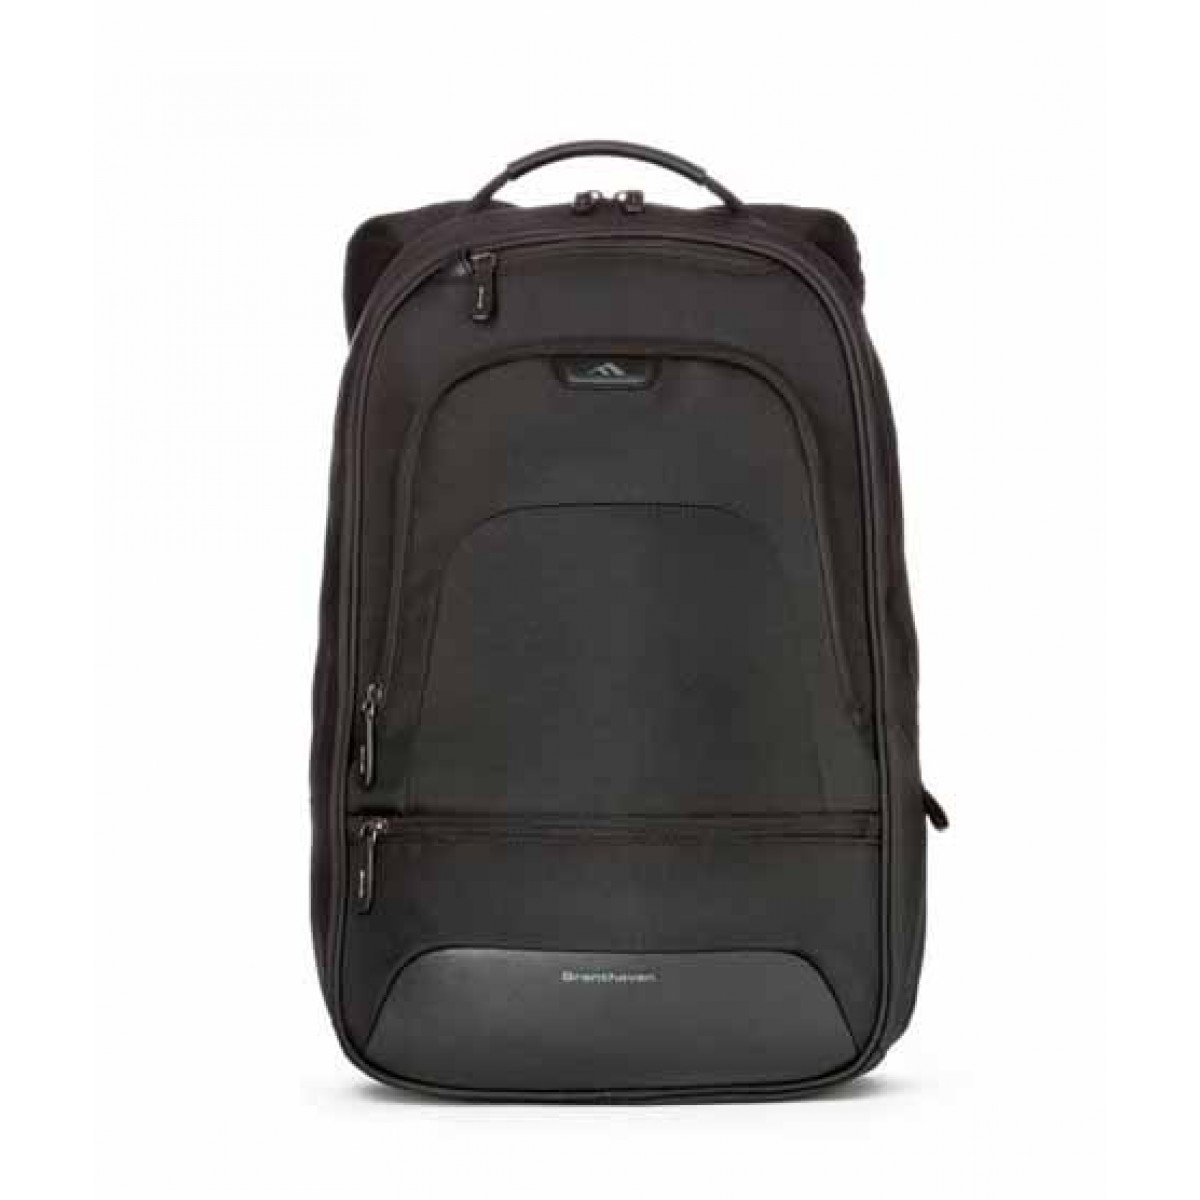 Brenthaven Elliot Backpack for Surface Book Black (2311)